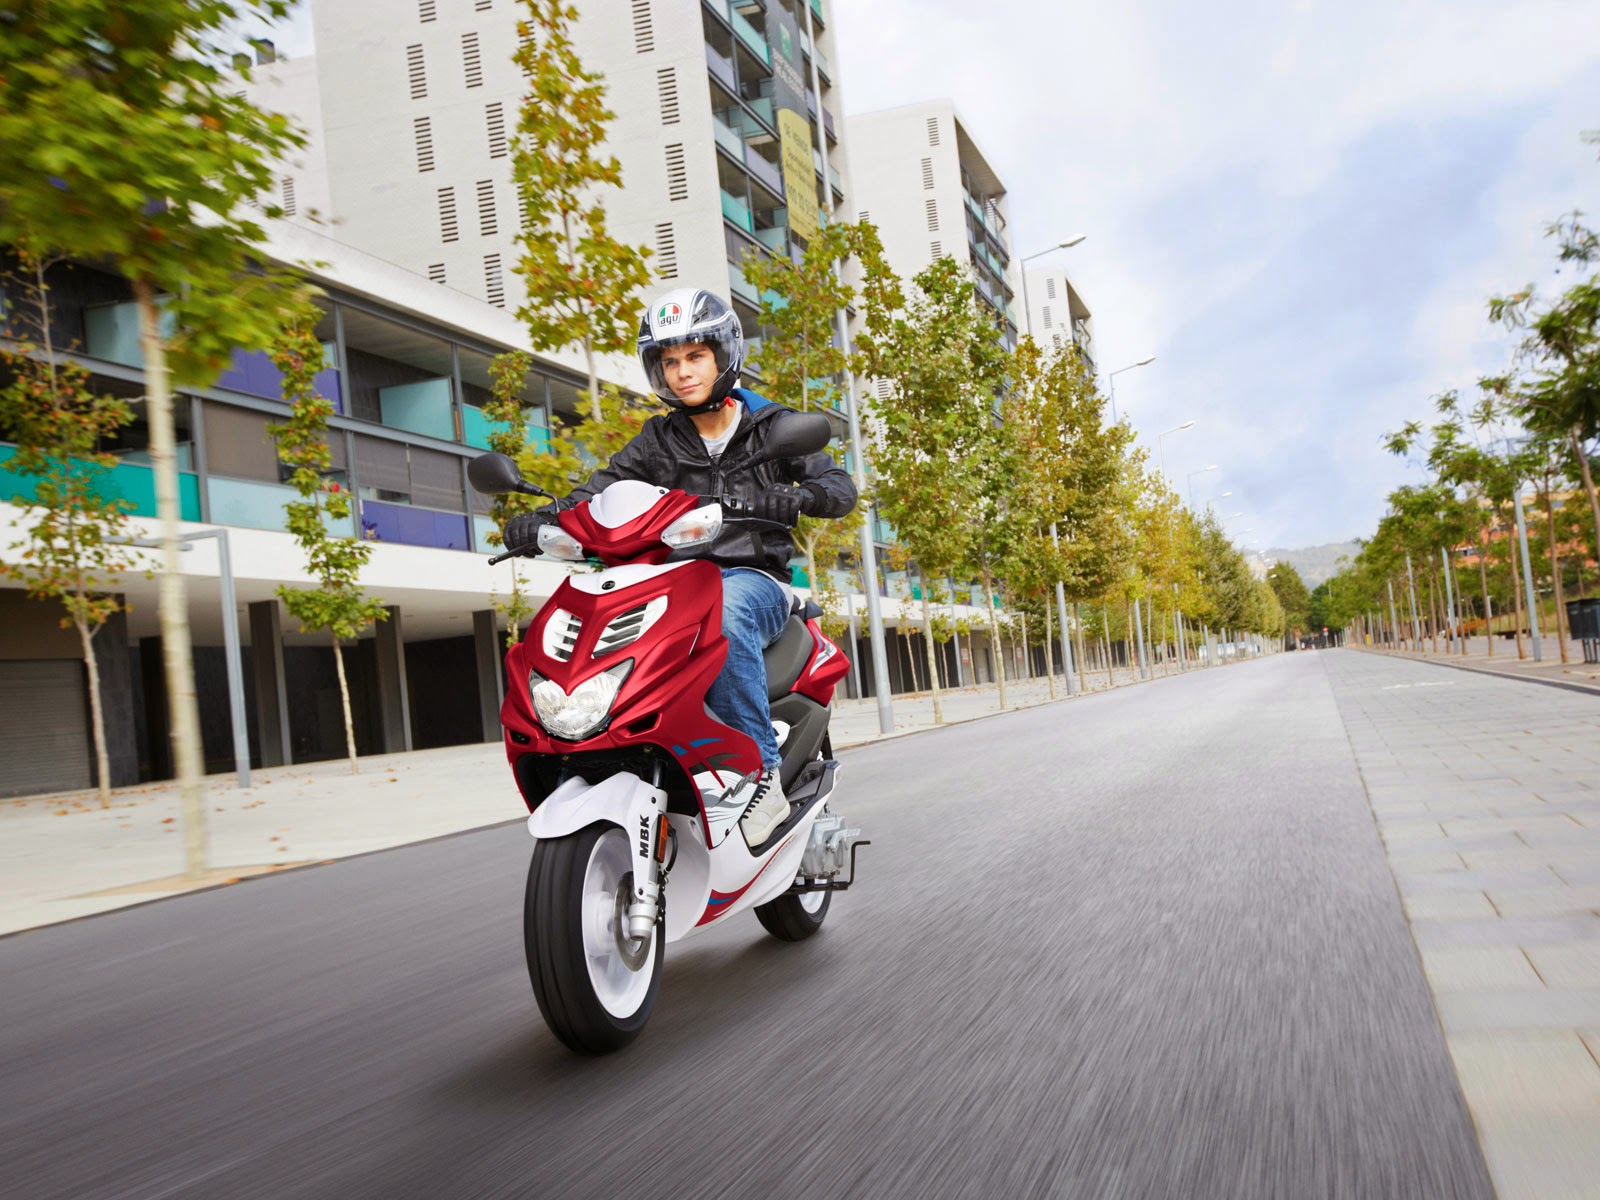 MBK Nitro New Red Scooty HD Images